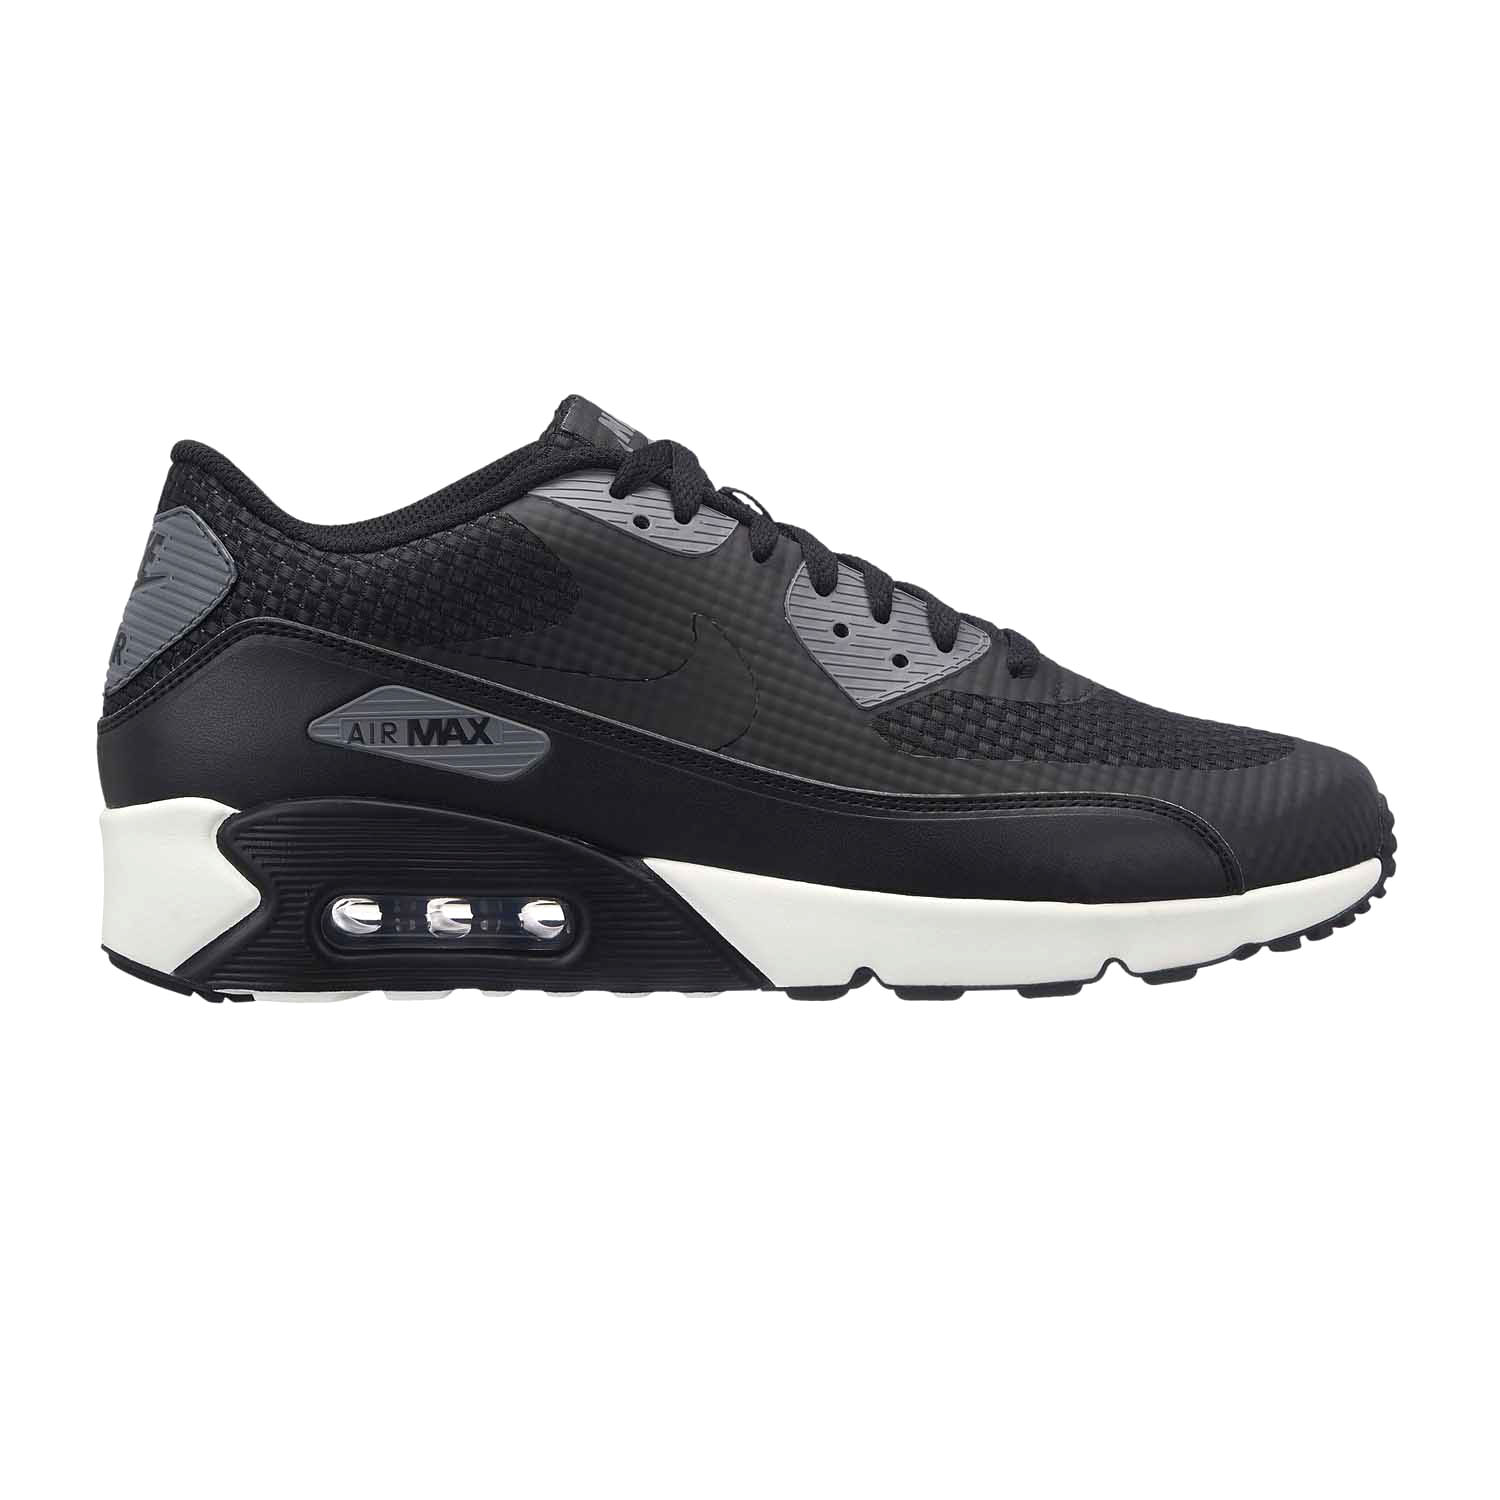 6ba60561c31 Nike Air Max 90 Ultra 2.0 SE M ( 876005-007 ) - Roe Shoes Collection